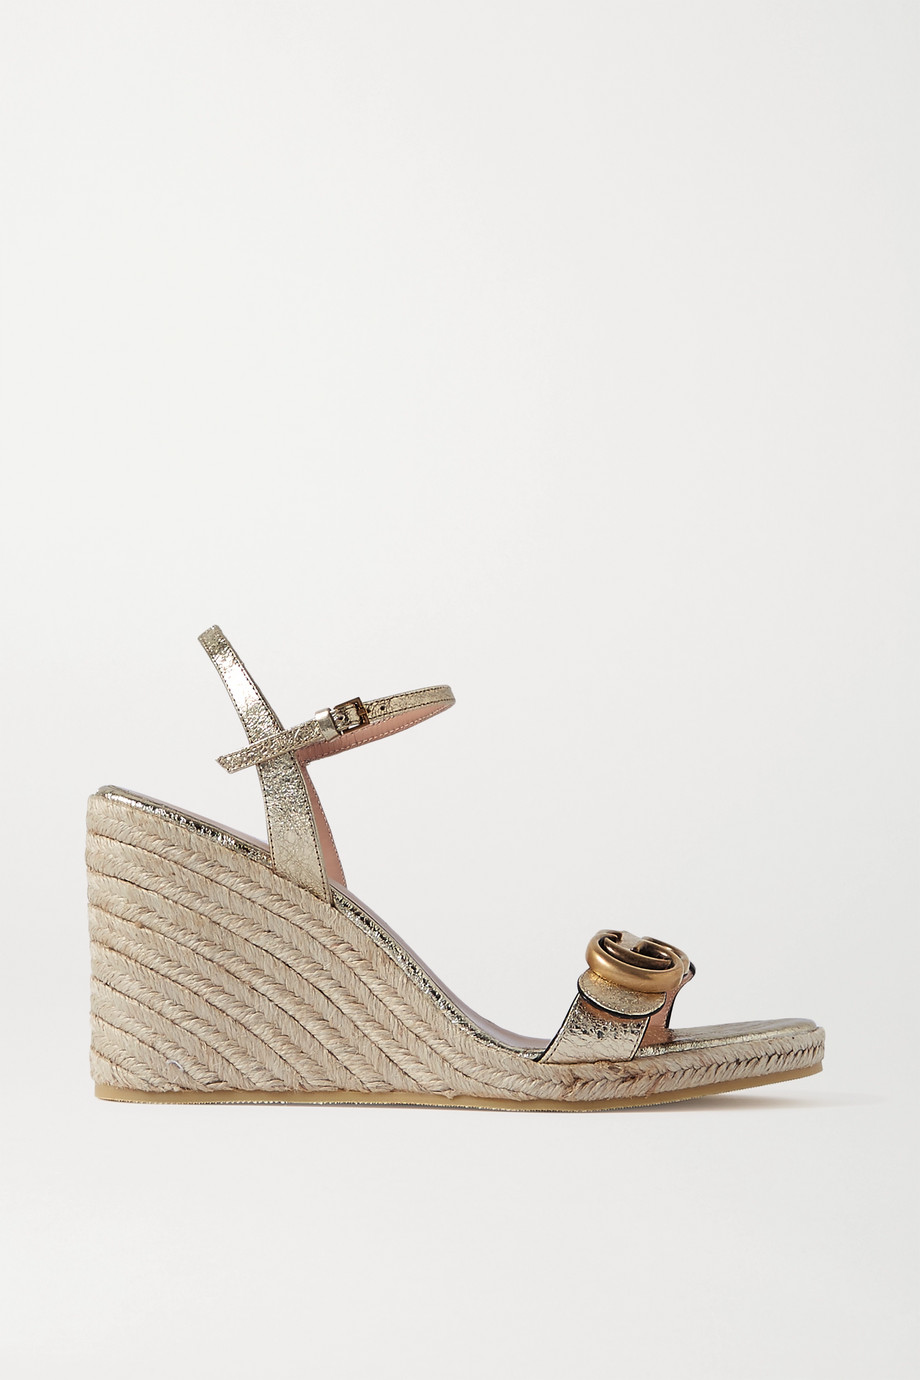 Gucci Pilar logo-embellished metallic leather espadrille wedge sandals